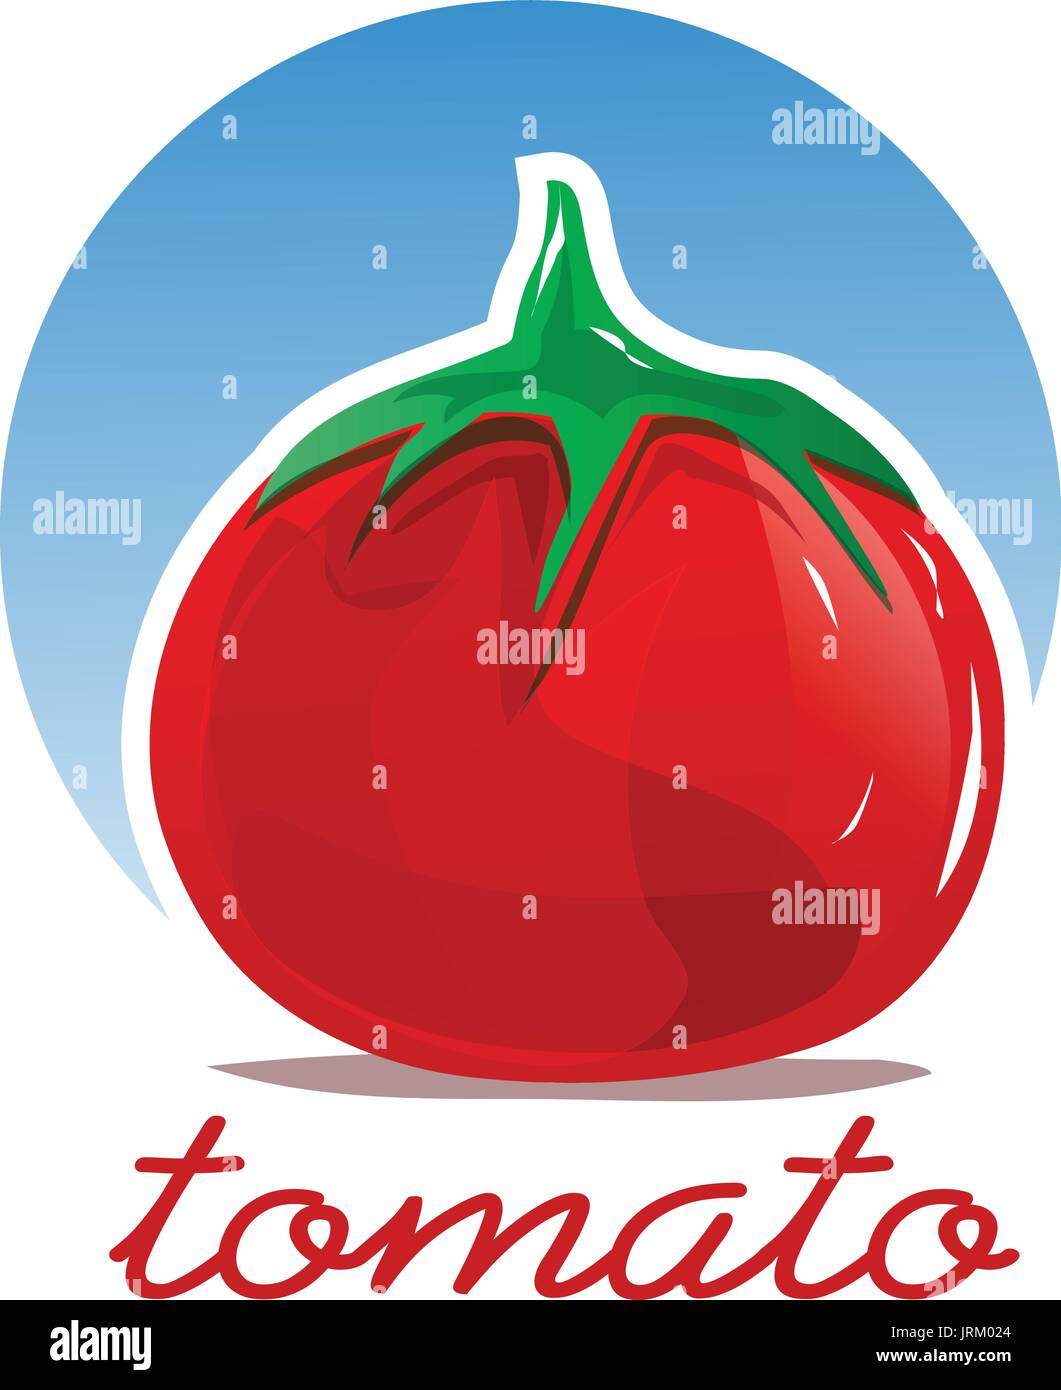 bold tomato with a circle, illustration design, isolated on